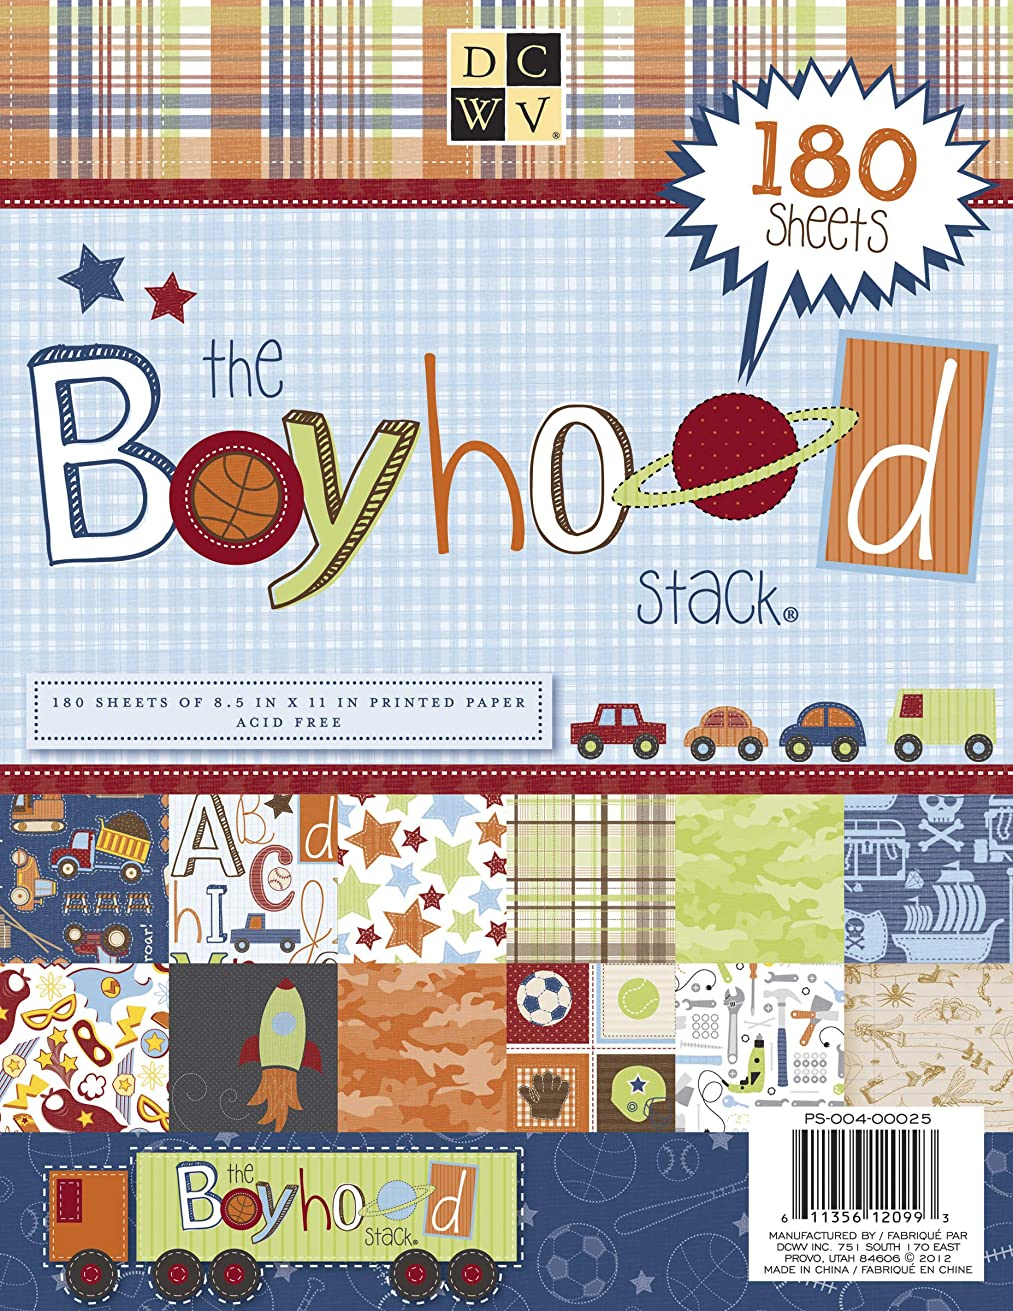 DCWV PS-004-00025 Cardstock Paper Boyhood Stack 8.5X11 180 Sheets Acid Free, Multicolor